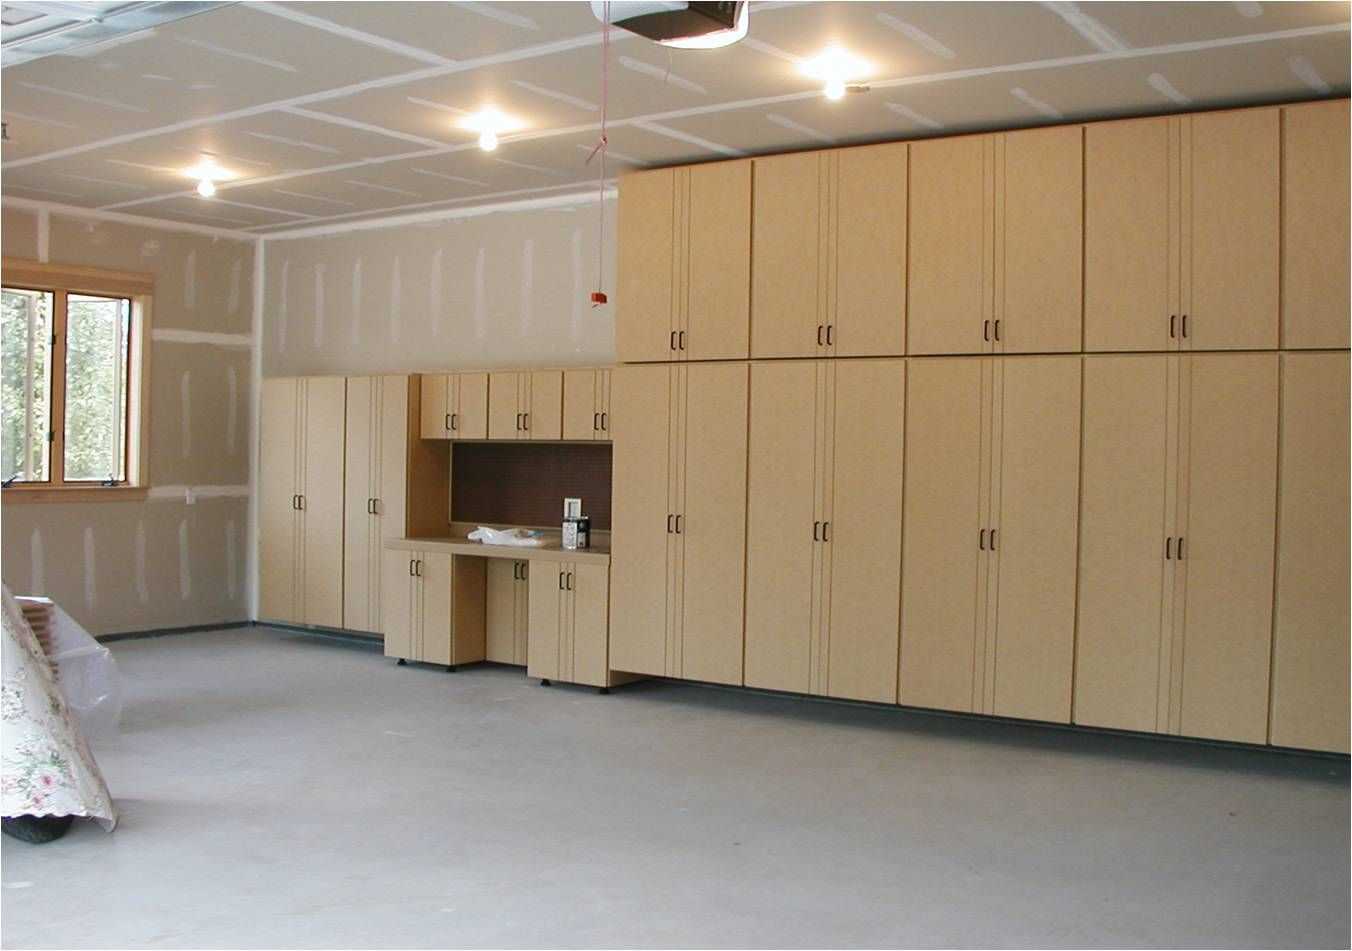 Large 24 Deep Garage Cabinets By Gscs For Maximum Storage Capacity You Re